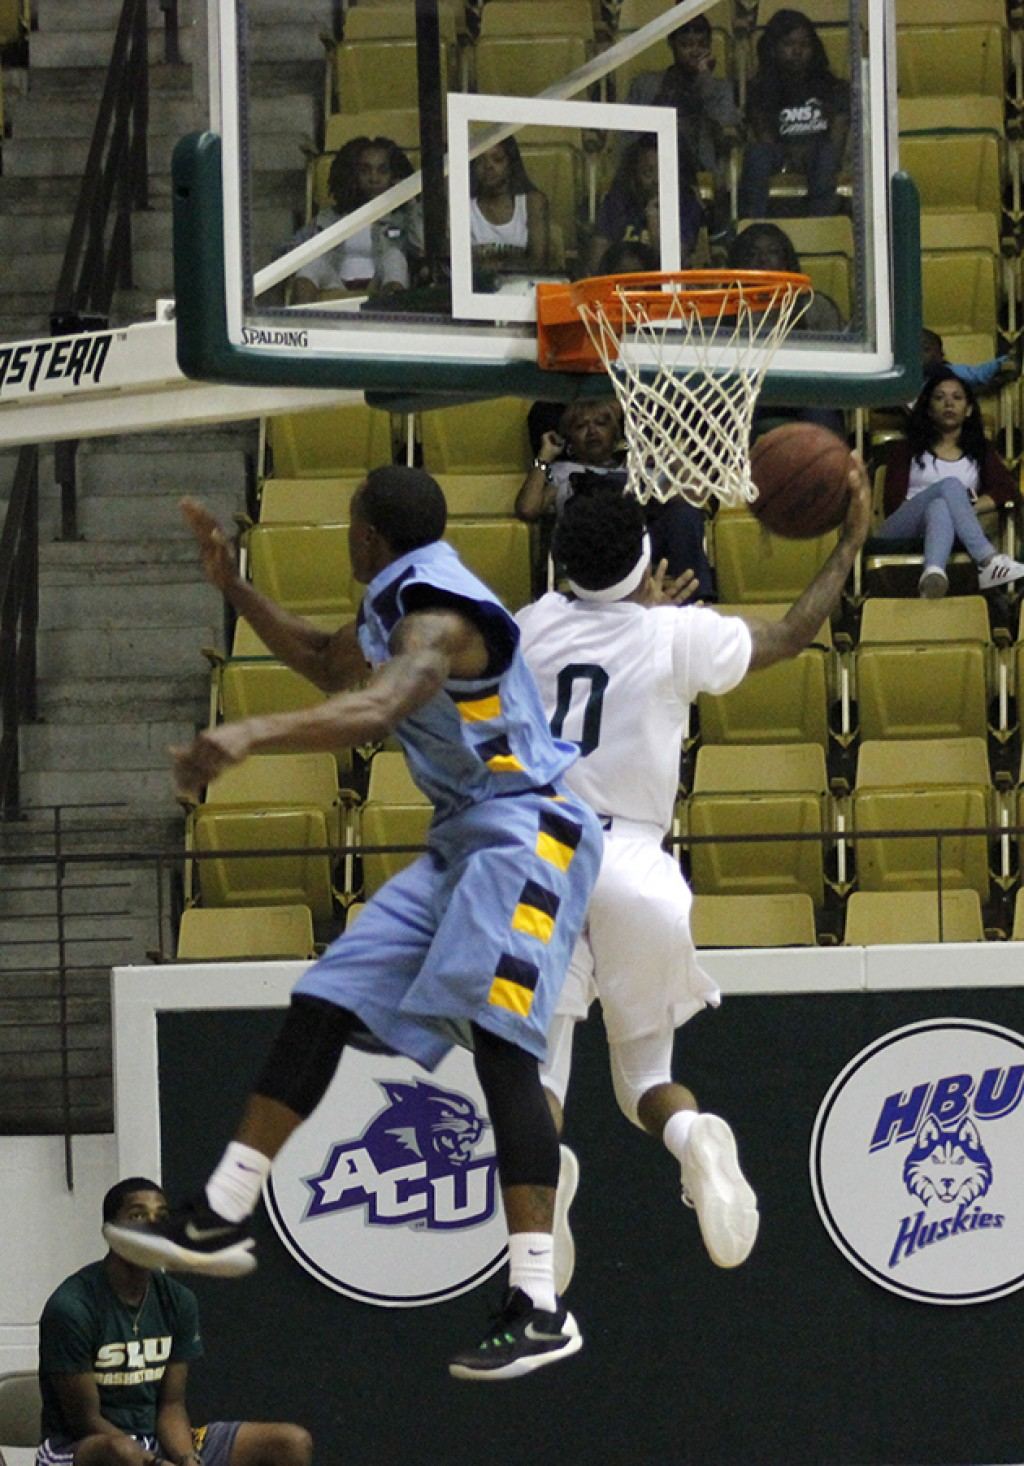 The men's basketball team displayed a solid performance as they returned to the University Center to treat fans with their first exhibition game. Last season, the Lions finished in the second round of the Southland Conference Tournament losing to the number four seeded Houston Baptist.